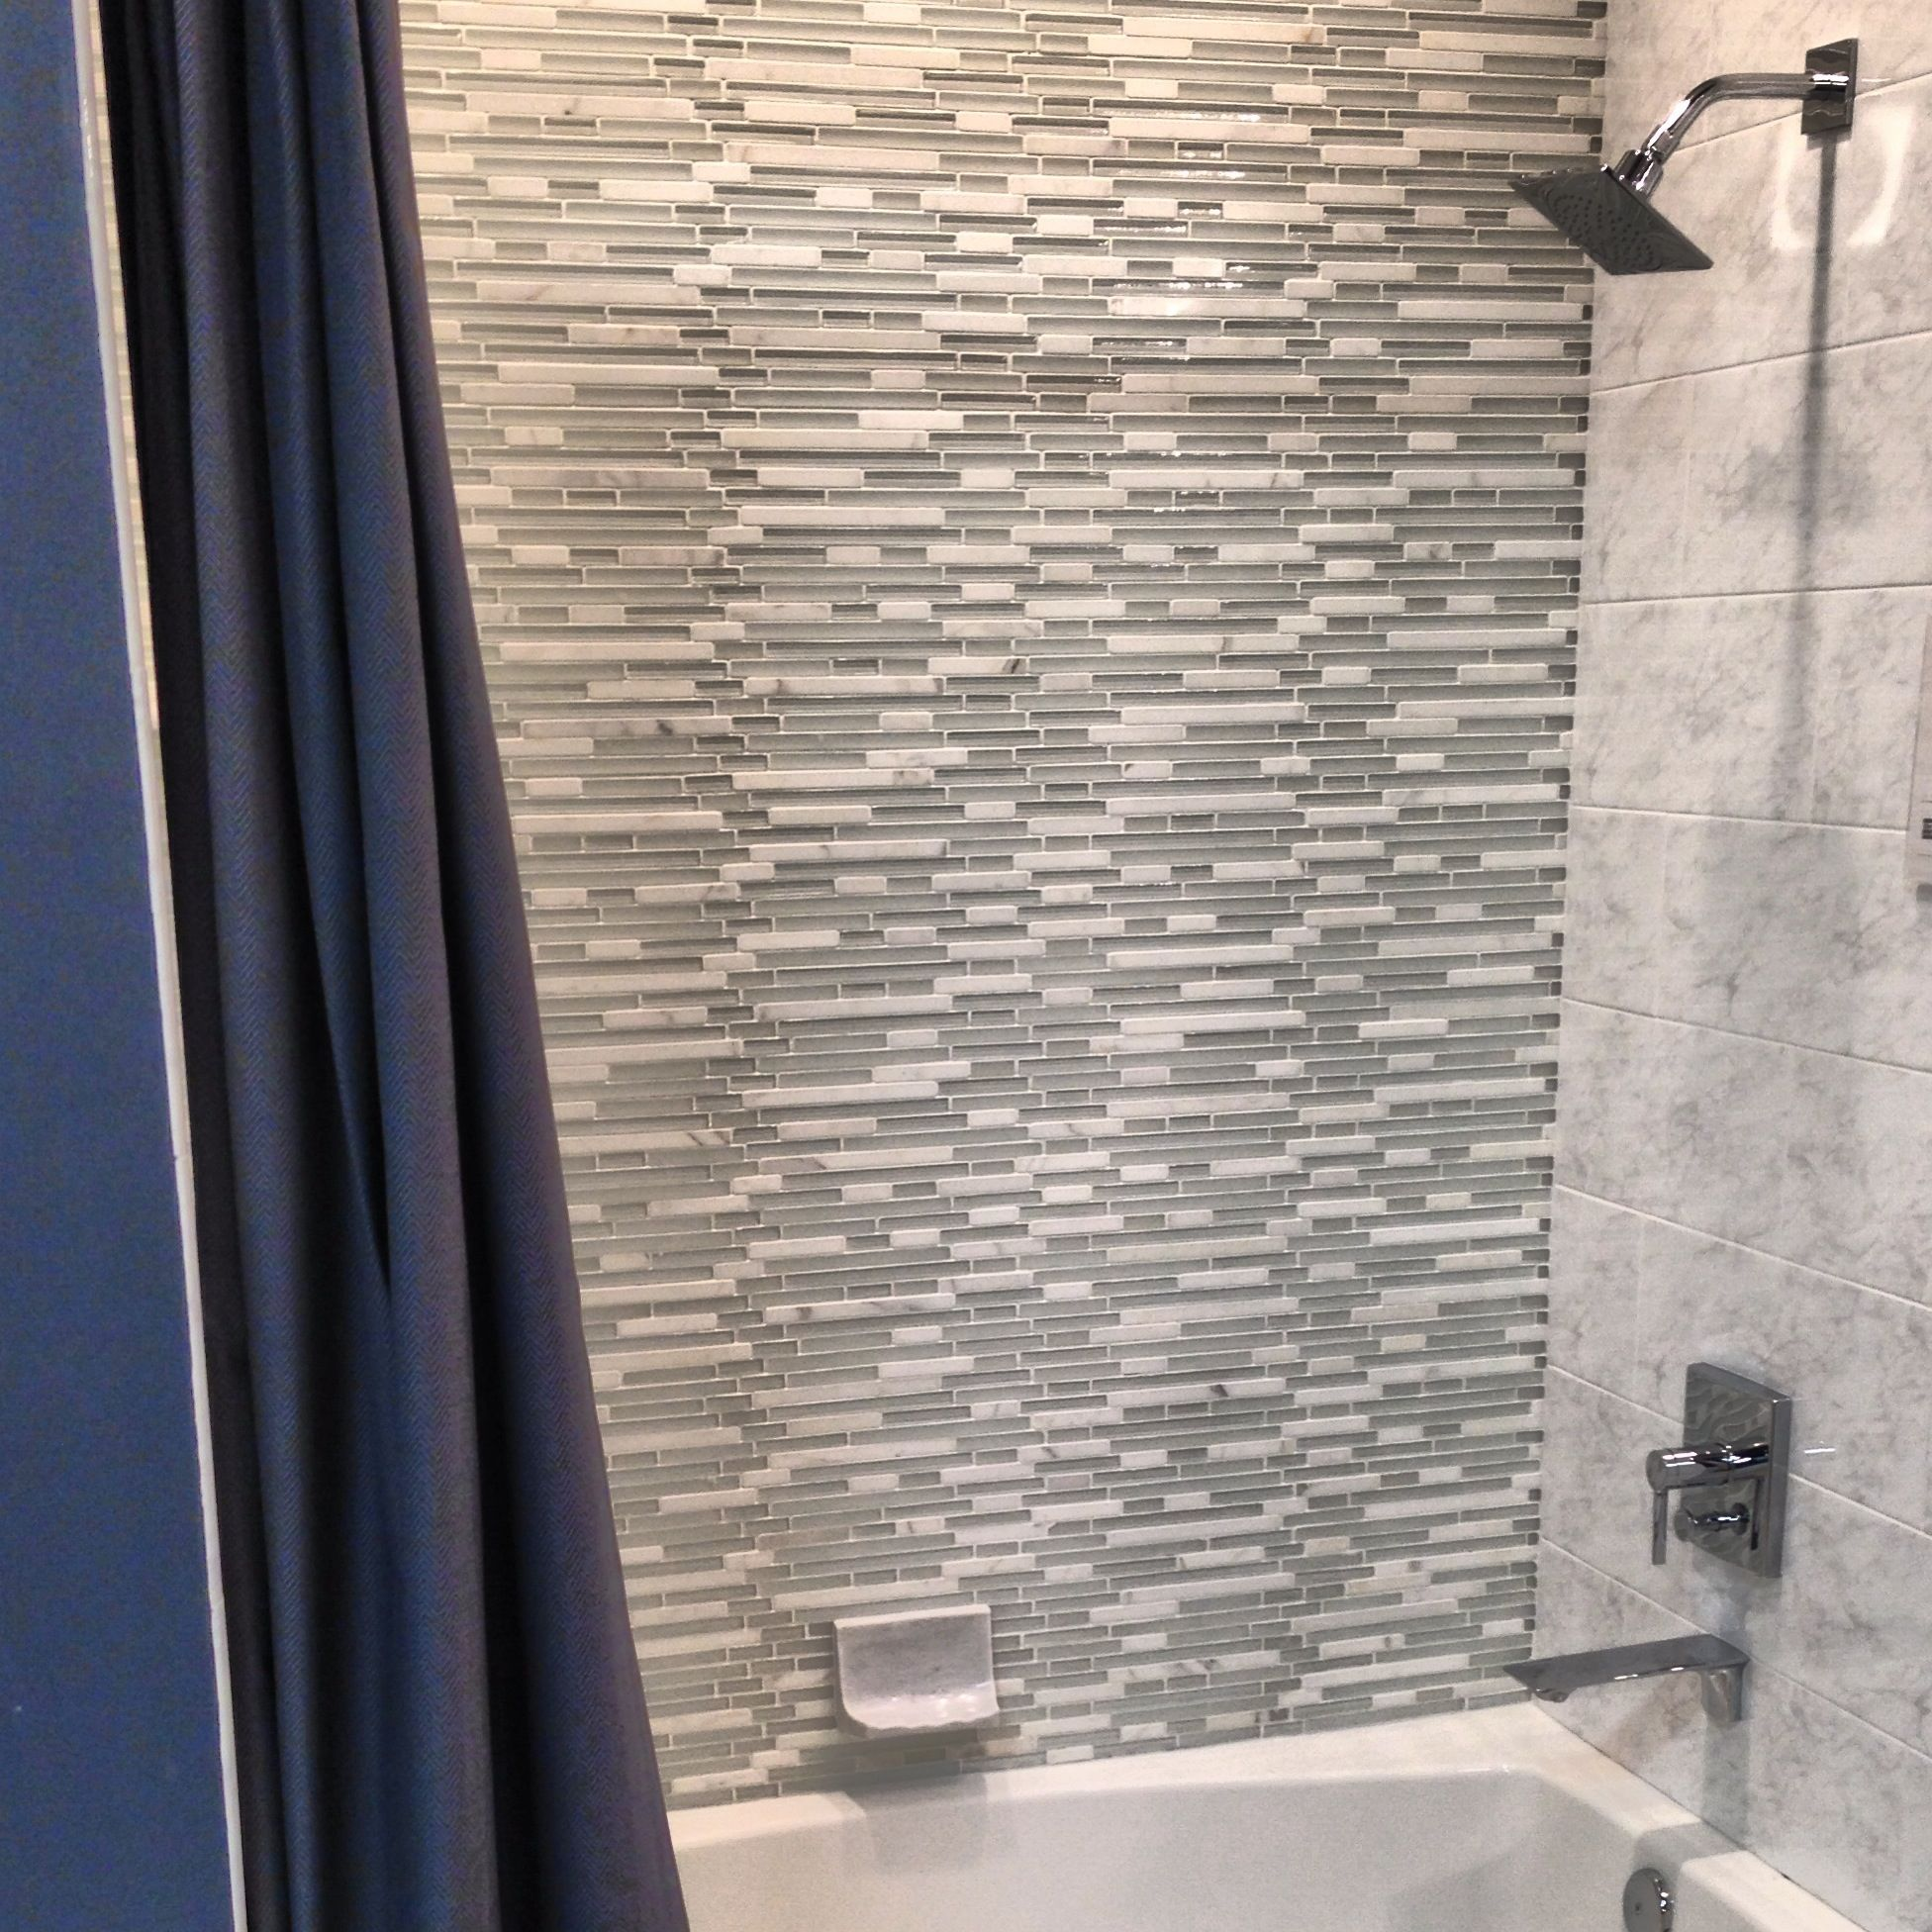 Mohawk Reg Grand Terrace Park City Random Block 12 X 12 Glass And Metal Mosaic Tile Metal Mosaic Tiles Grand Terrace Mosaic Tiles